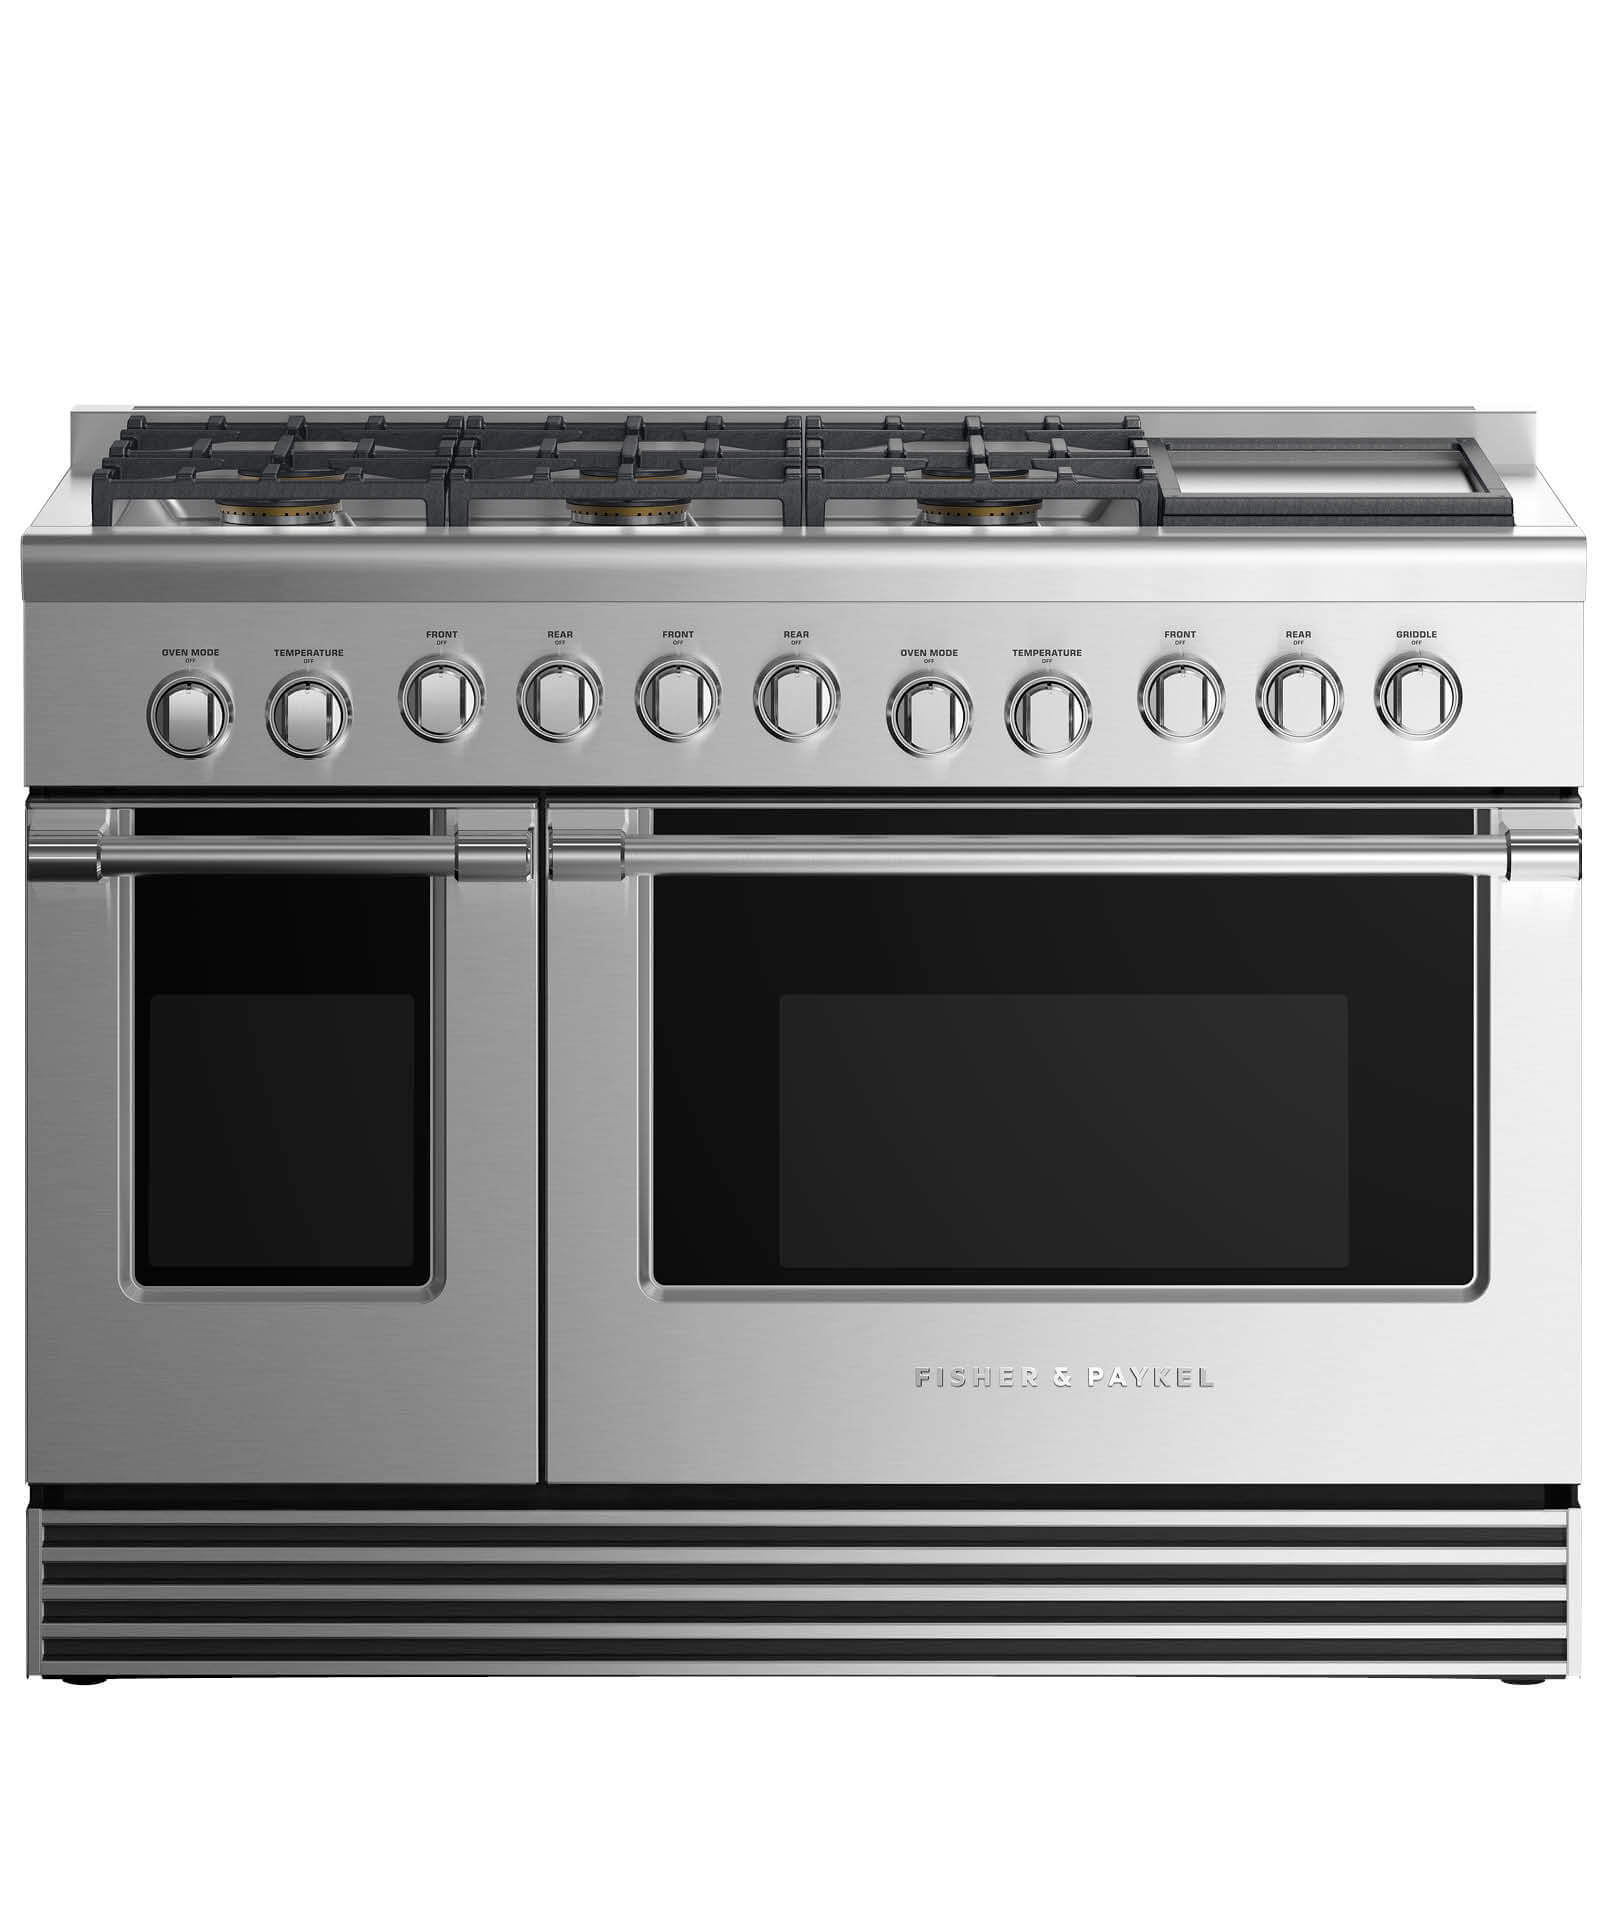 "Fisher and Paykel Gas Range 48"", 6 Burners with Griddle (LPG)"